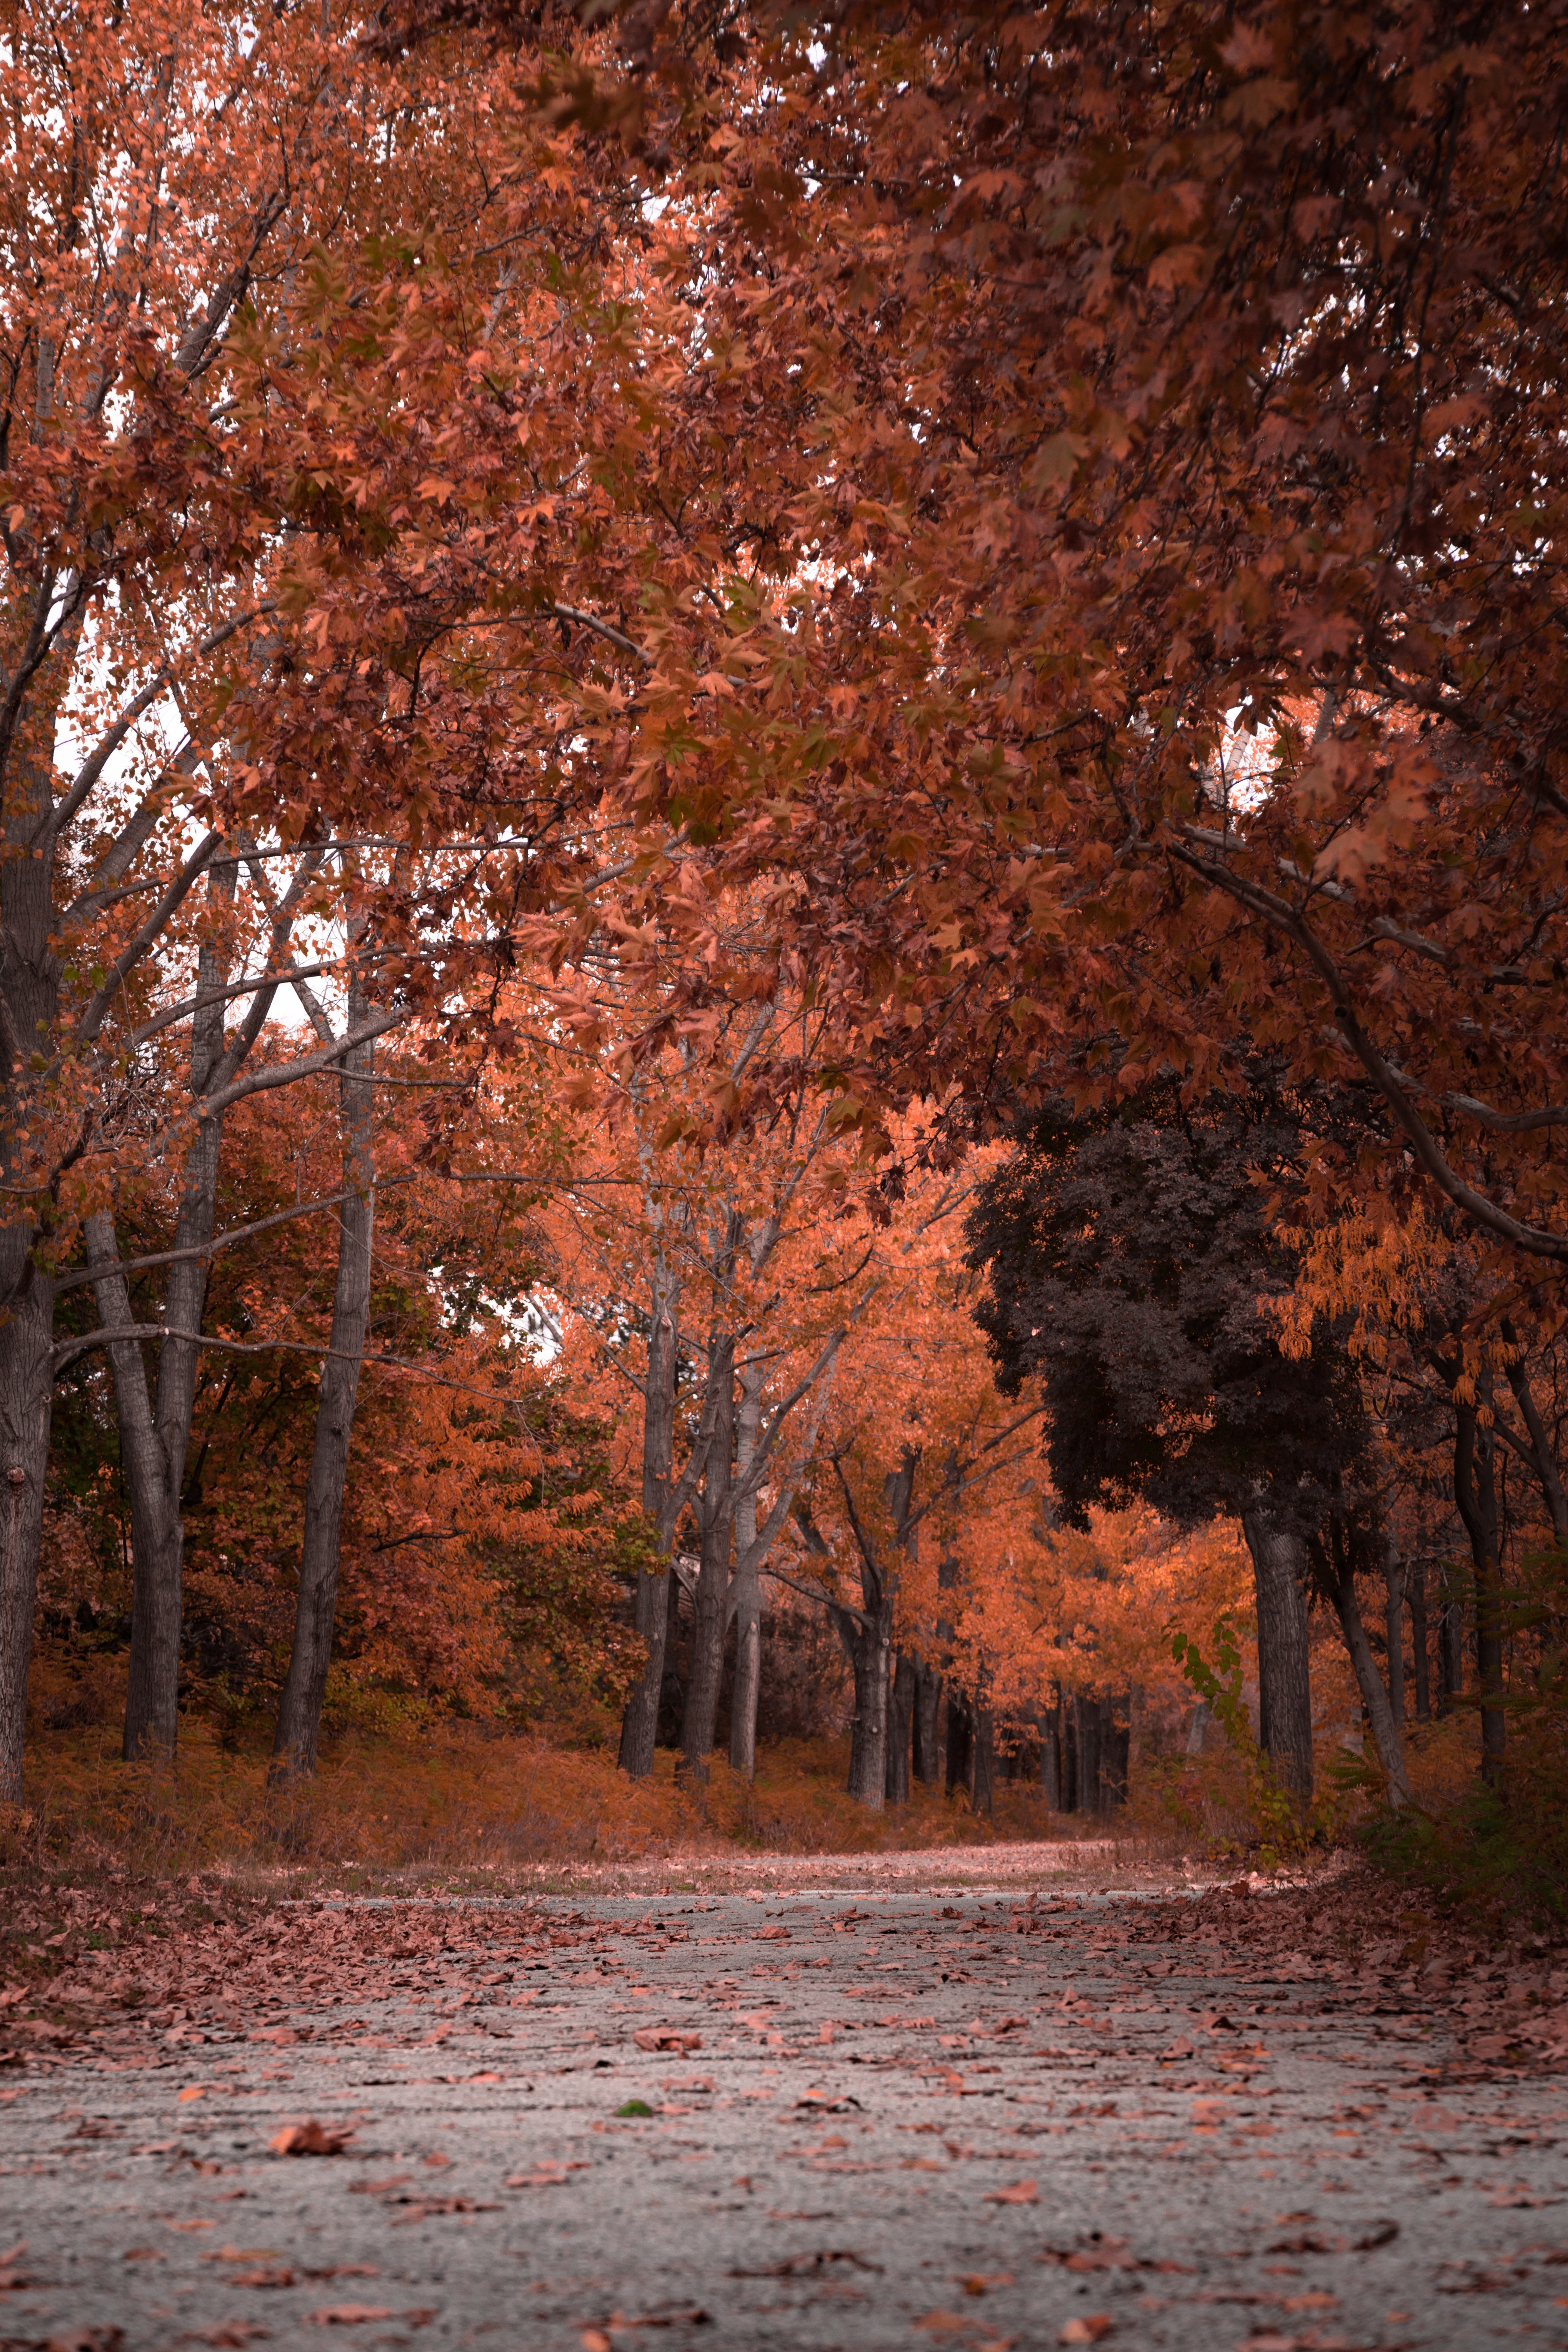 55949 download wallpaper Nature, Trees, Autumn, Park, Foliage screensavers and pictures for free